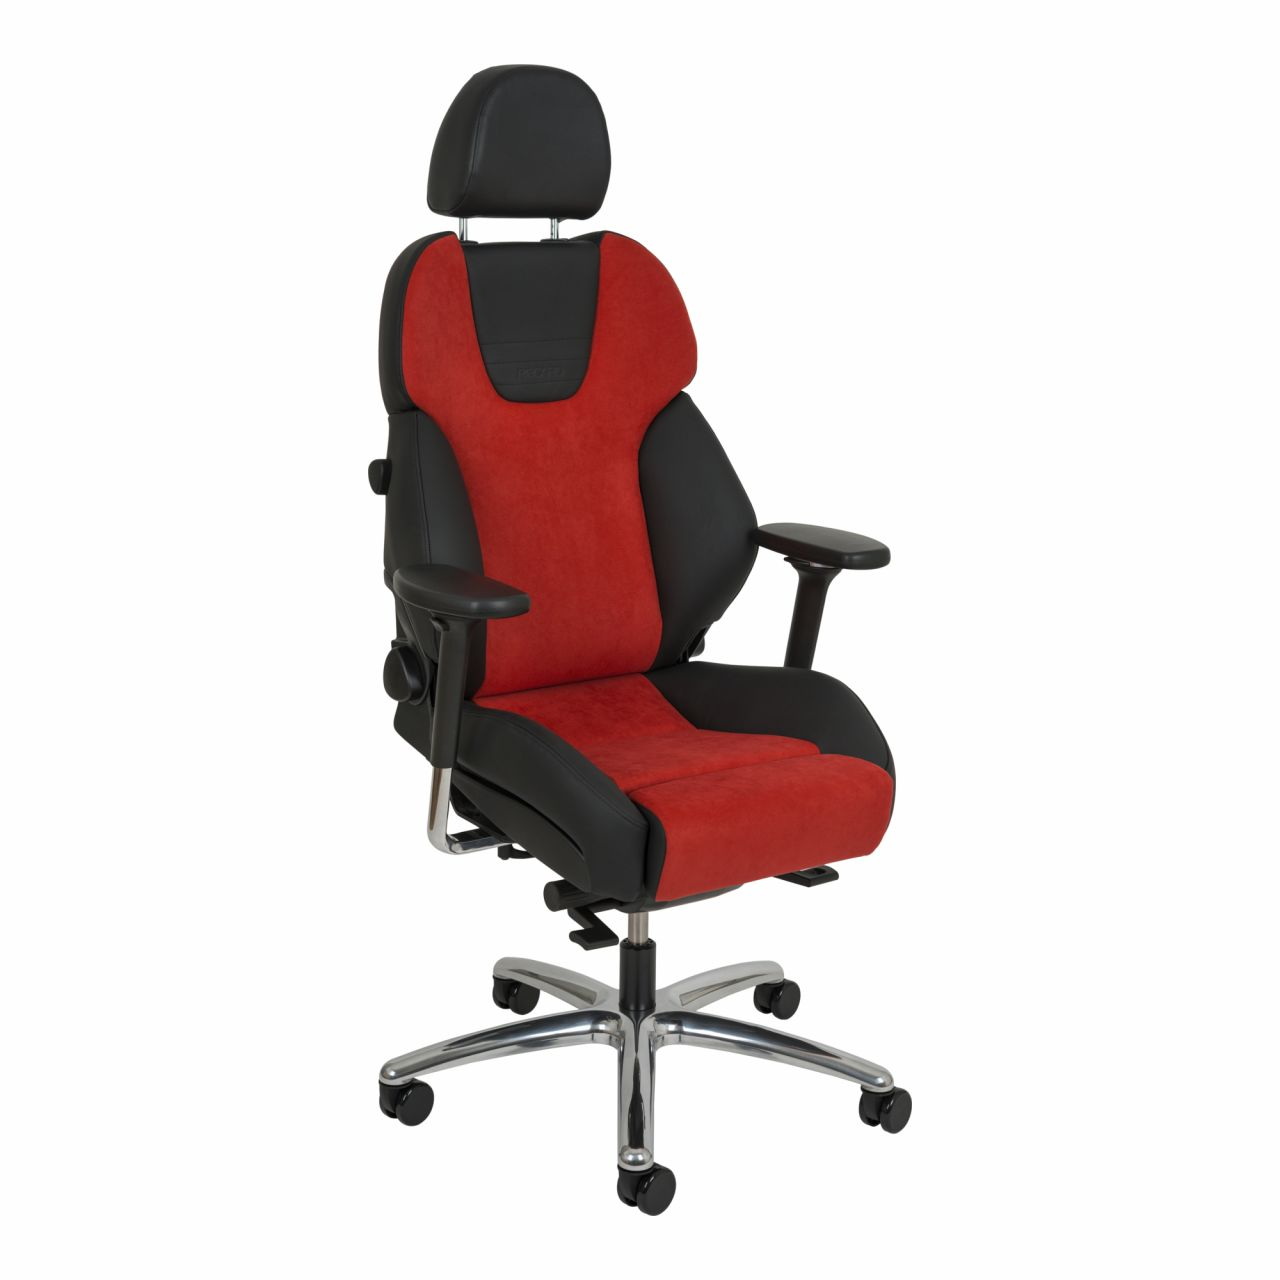 Recaro Style Office Sport Seat GSM Sport Seats - Recaro desk chair